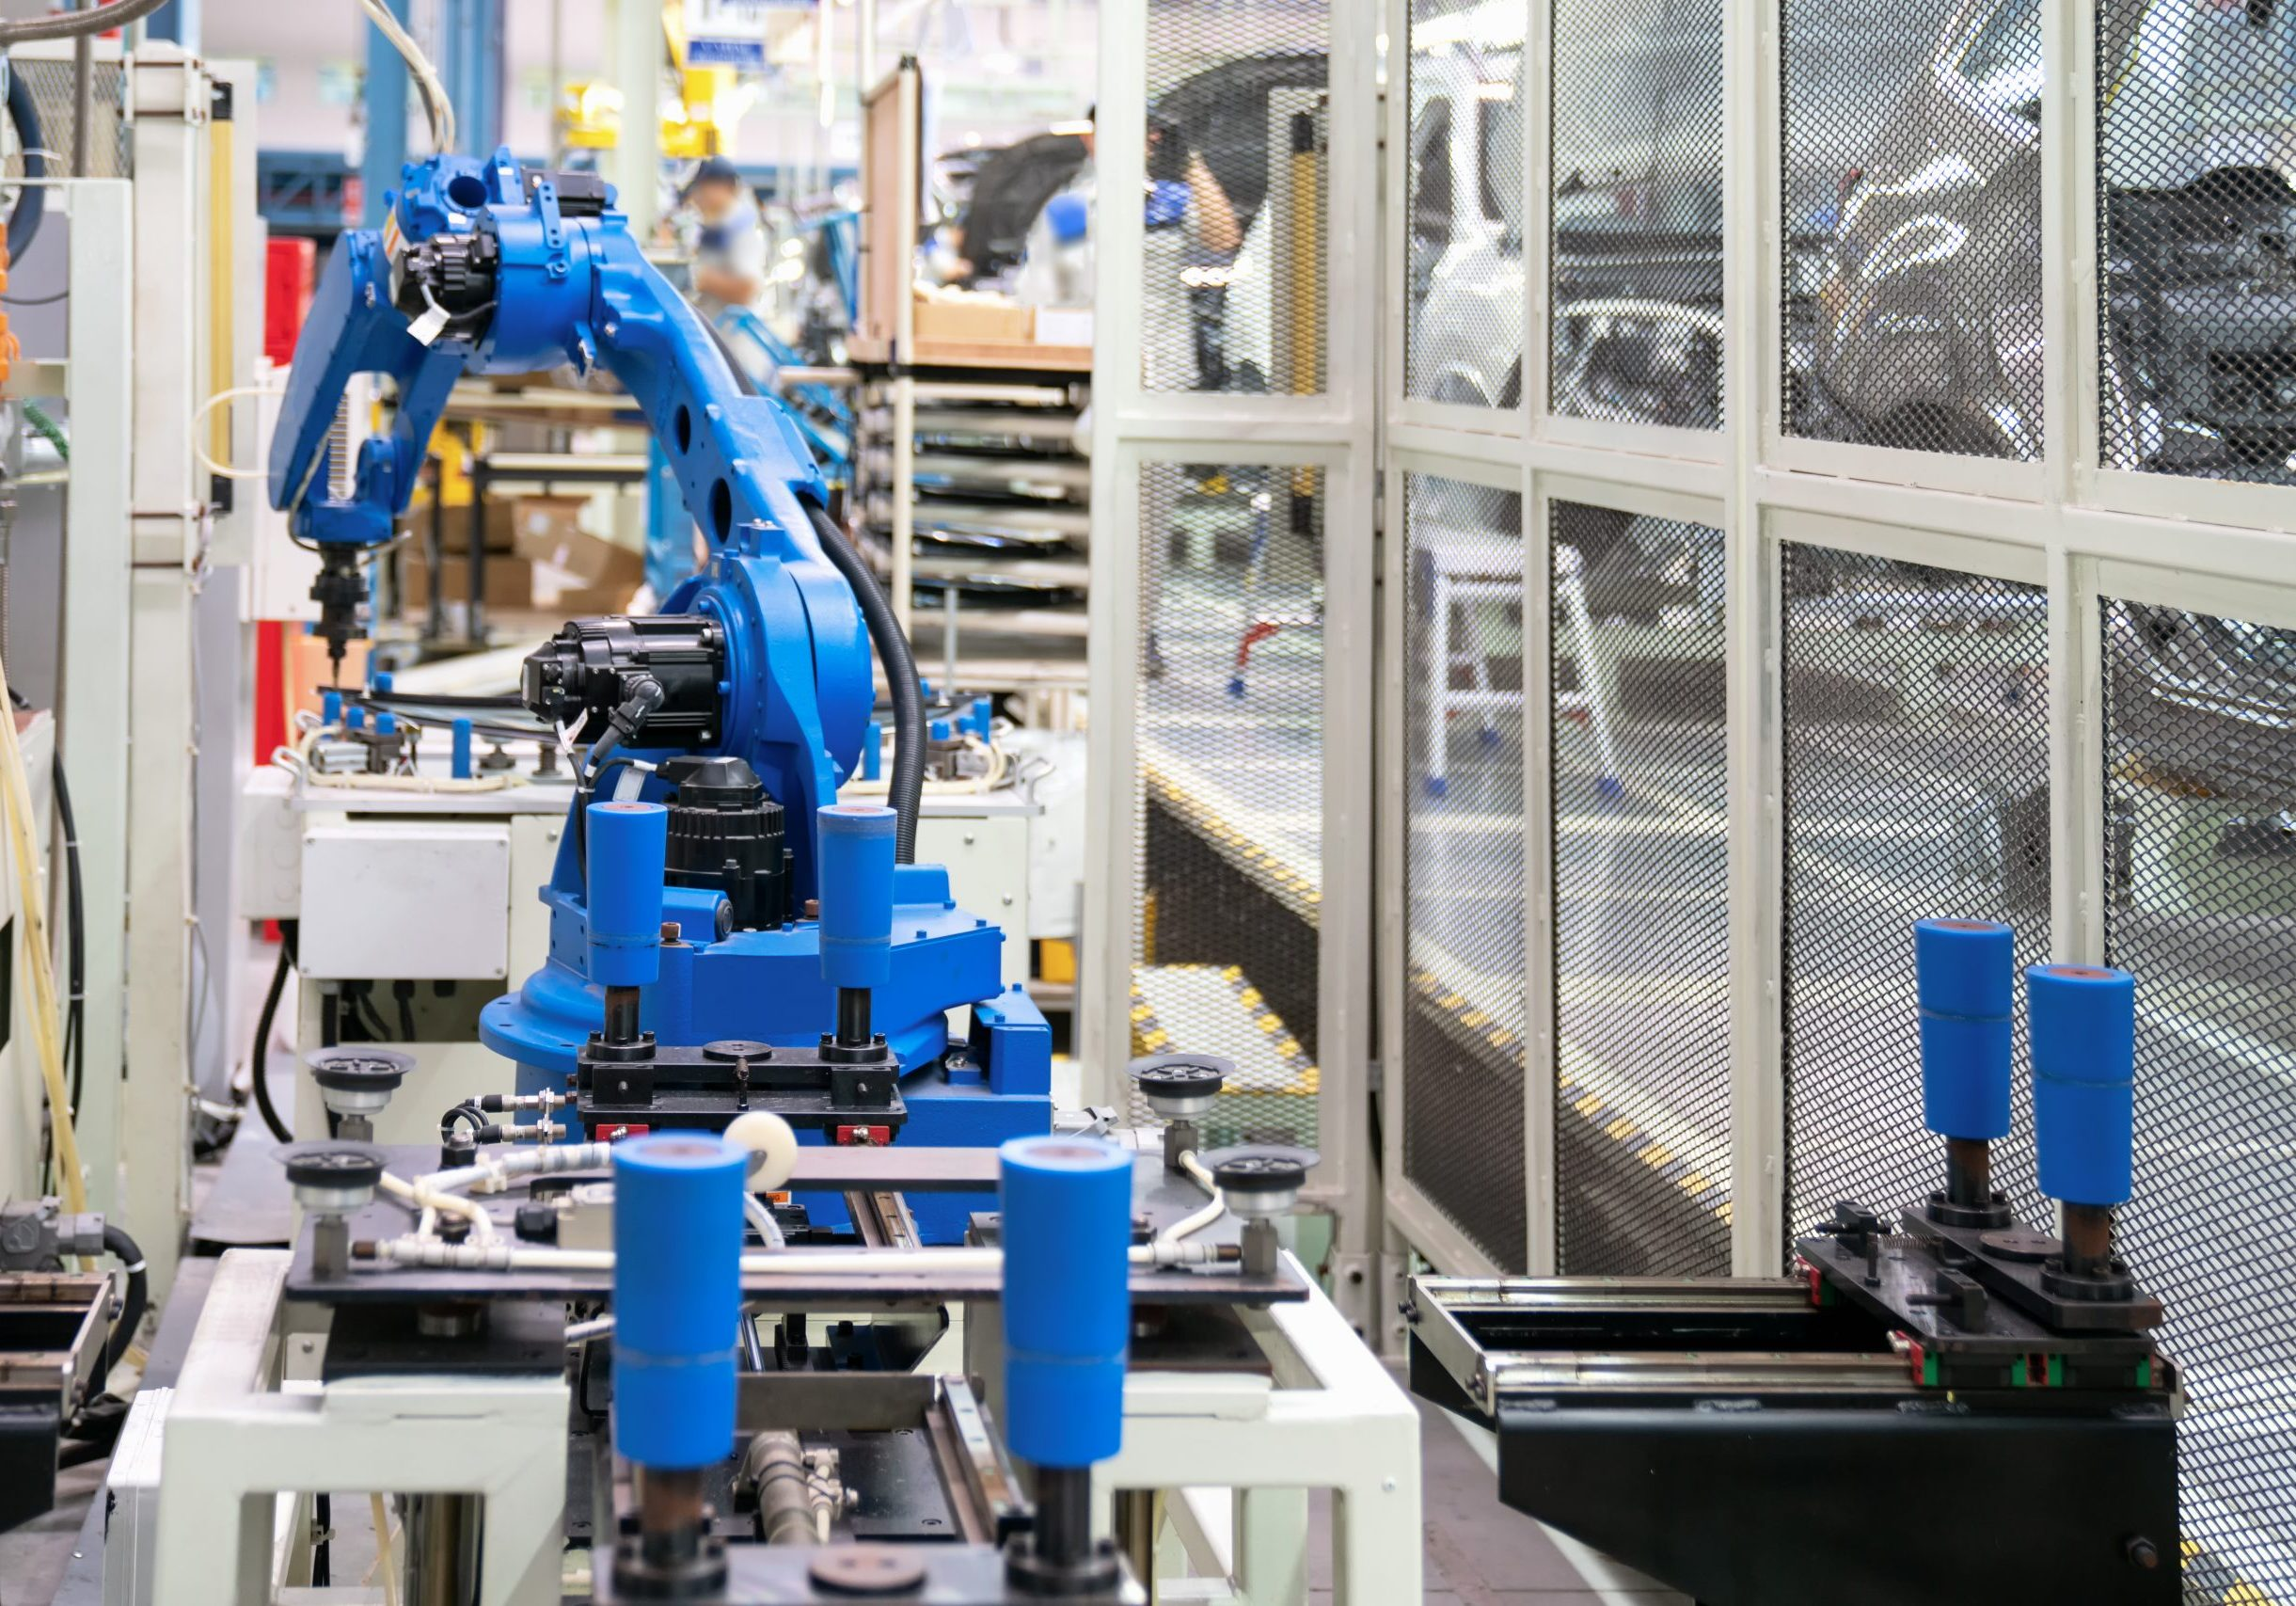 Automatic robot glass sealing in smart manufacturing factory 4.0 in the process of car manufacturing.Automation robotic arm working in operation machine zone in factory, Robot using in industrial manufacturing .